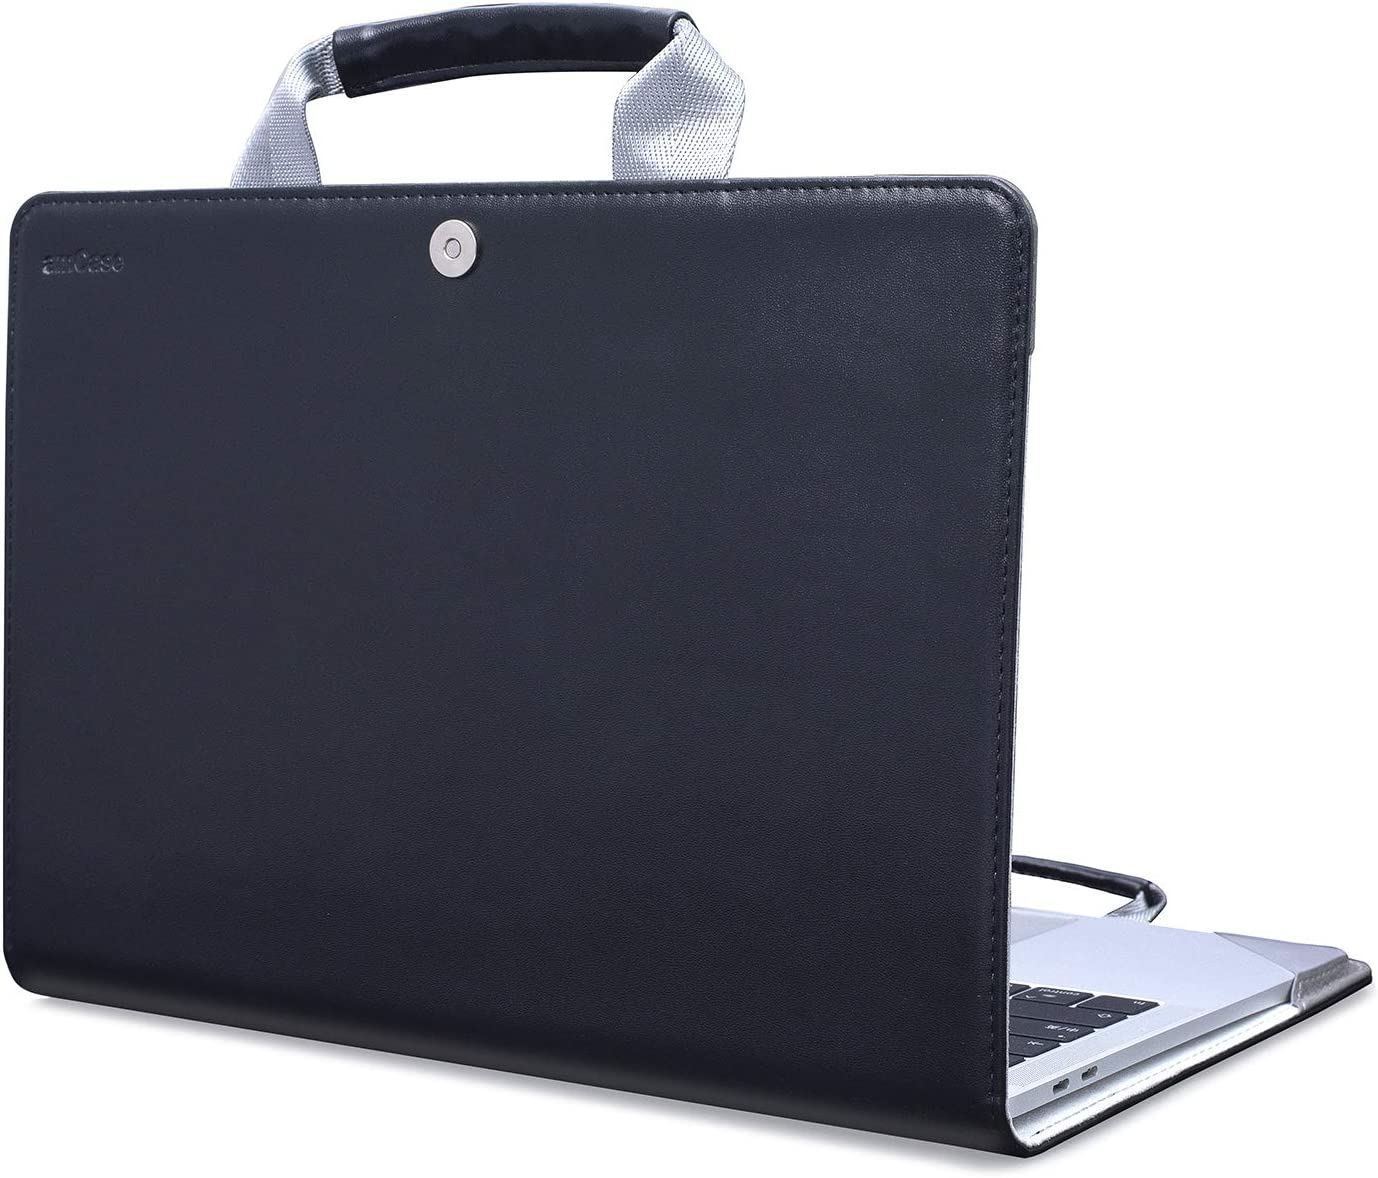 amCase Case Compatible with MacBook Pro 13 inch 2020 2019 2018 2017 2016 Release Models A2338 M1 A2289 A2251 A2159 A1989 A1706 A1708,PU Leather Shell with Handle,Black